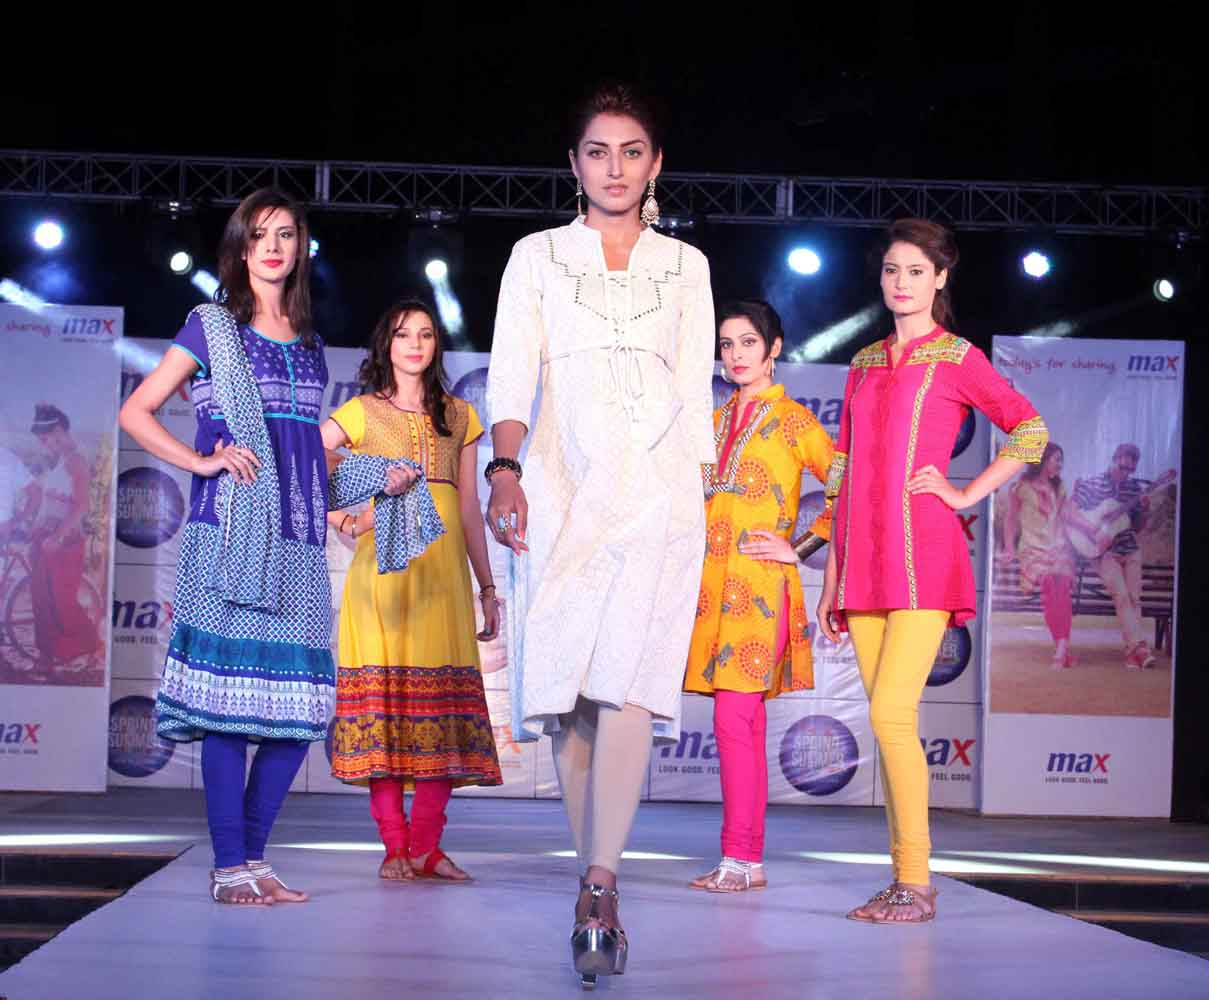 Max , India's leading value fashion brand announced the launch of its summer-2015 collections in a glittering fashion show at Elante Mall Chandigarh this evening. The latest collection featured the season's hottest trends in clothing, accessories and footwear.